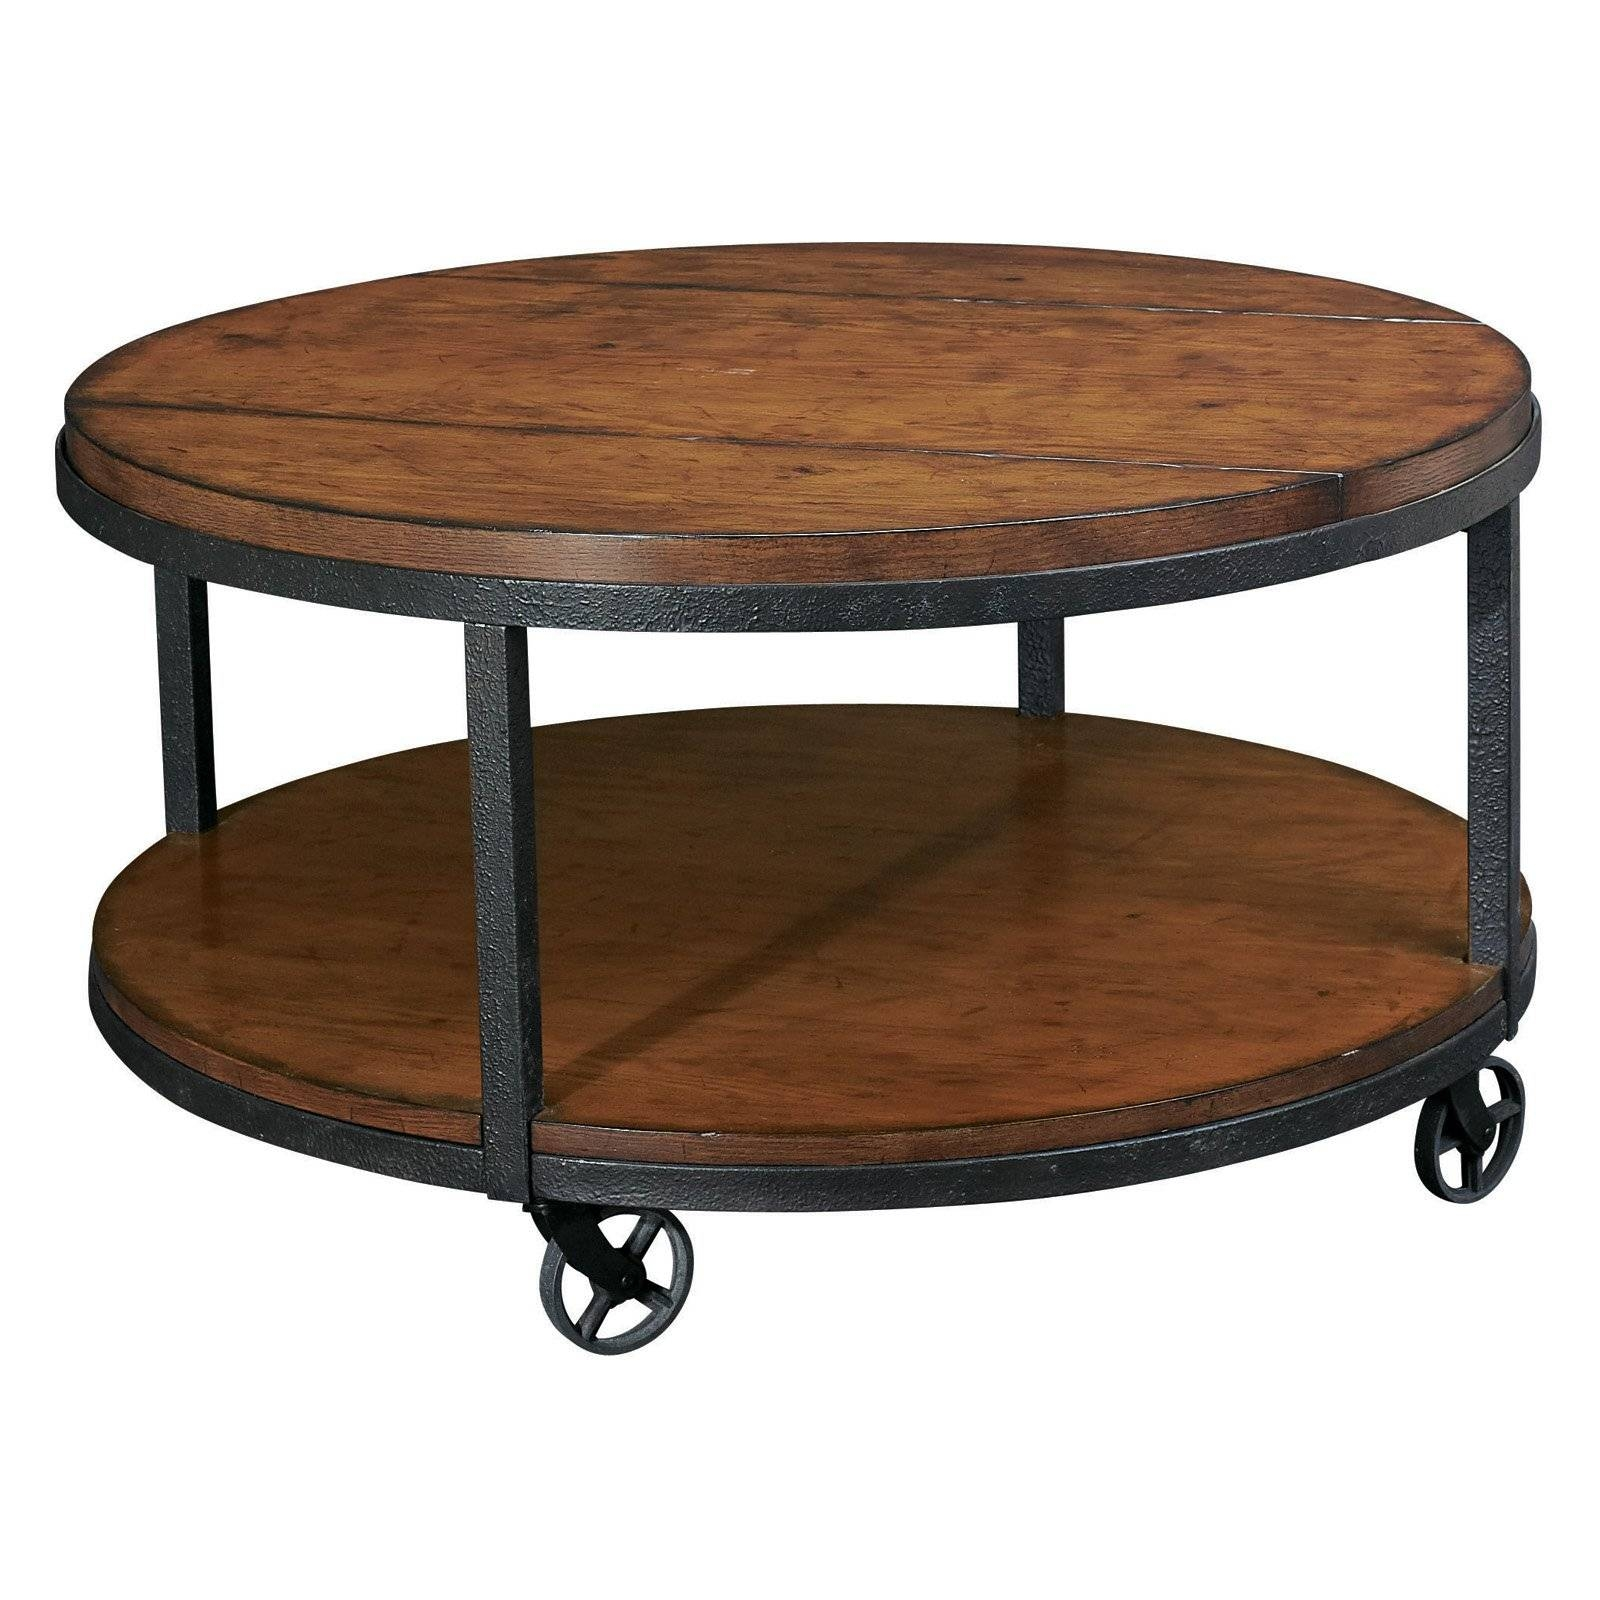 Hammary Baja Round Coffee Table | Hayneedle For Circular Coffee Tables (View 20 of 30)